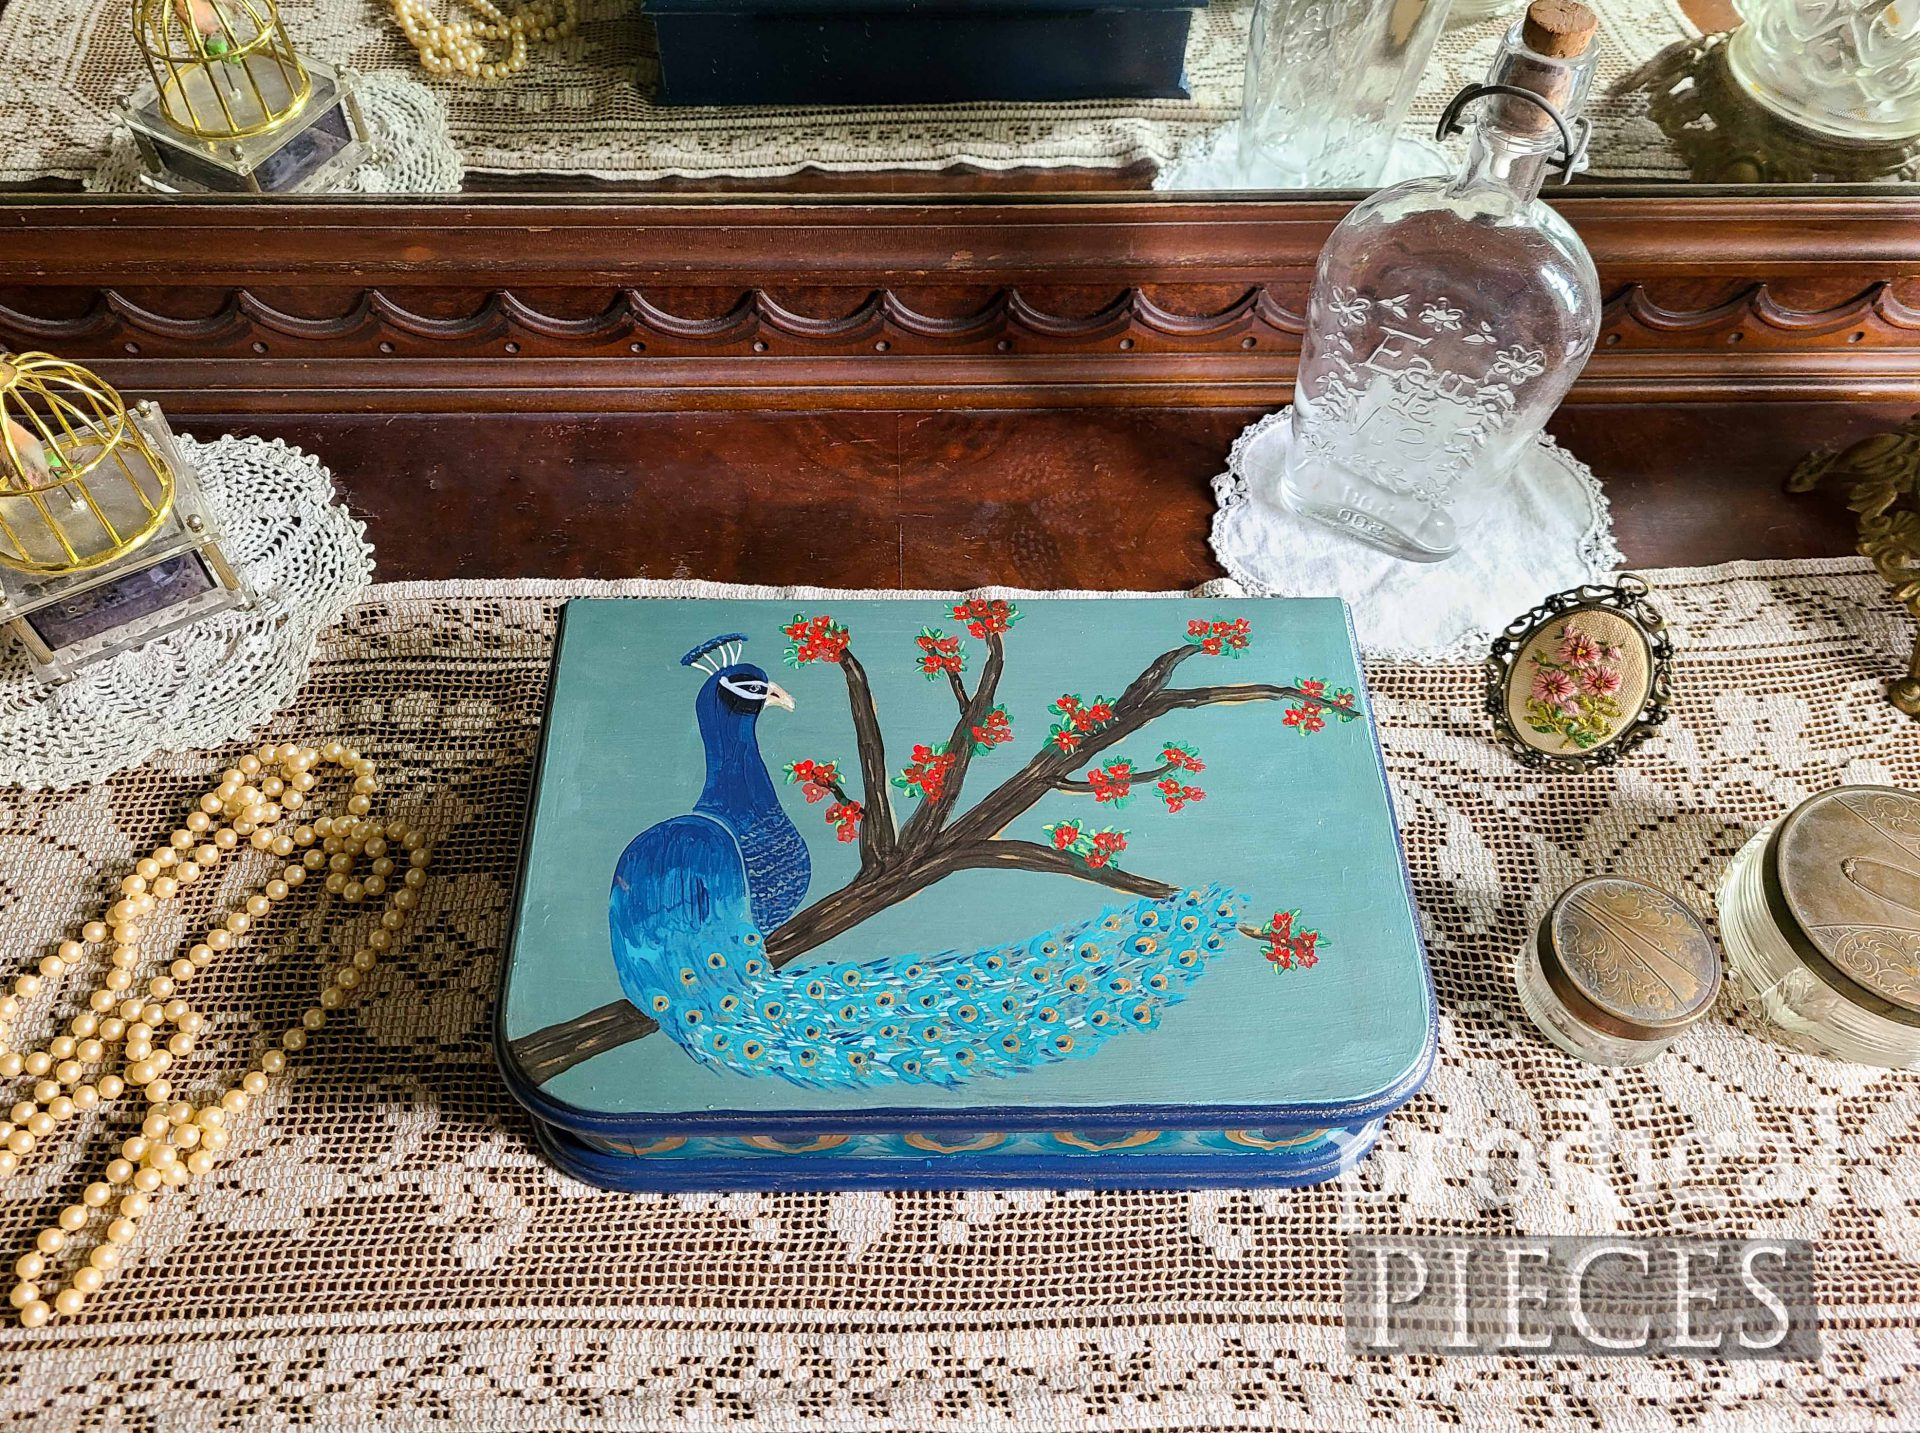 Hand-Painted Vintage Jewelry Box with Peacock Design by Larissa of Prodigal Pieces | prodigalpieces.com #prodigalpieces #diy #home #homedecor #jewelry